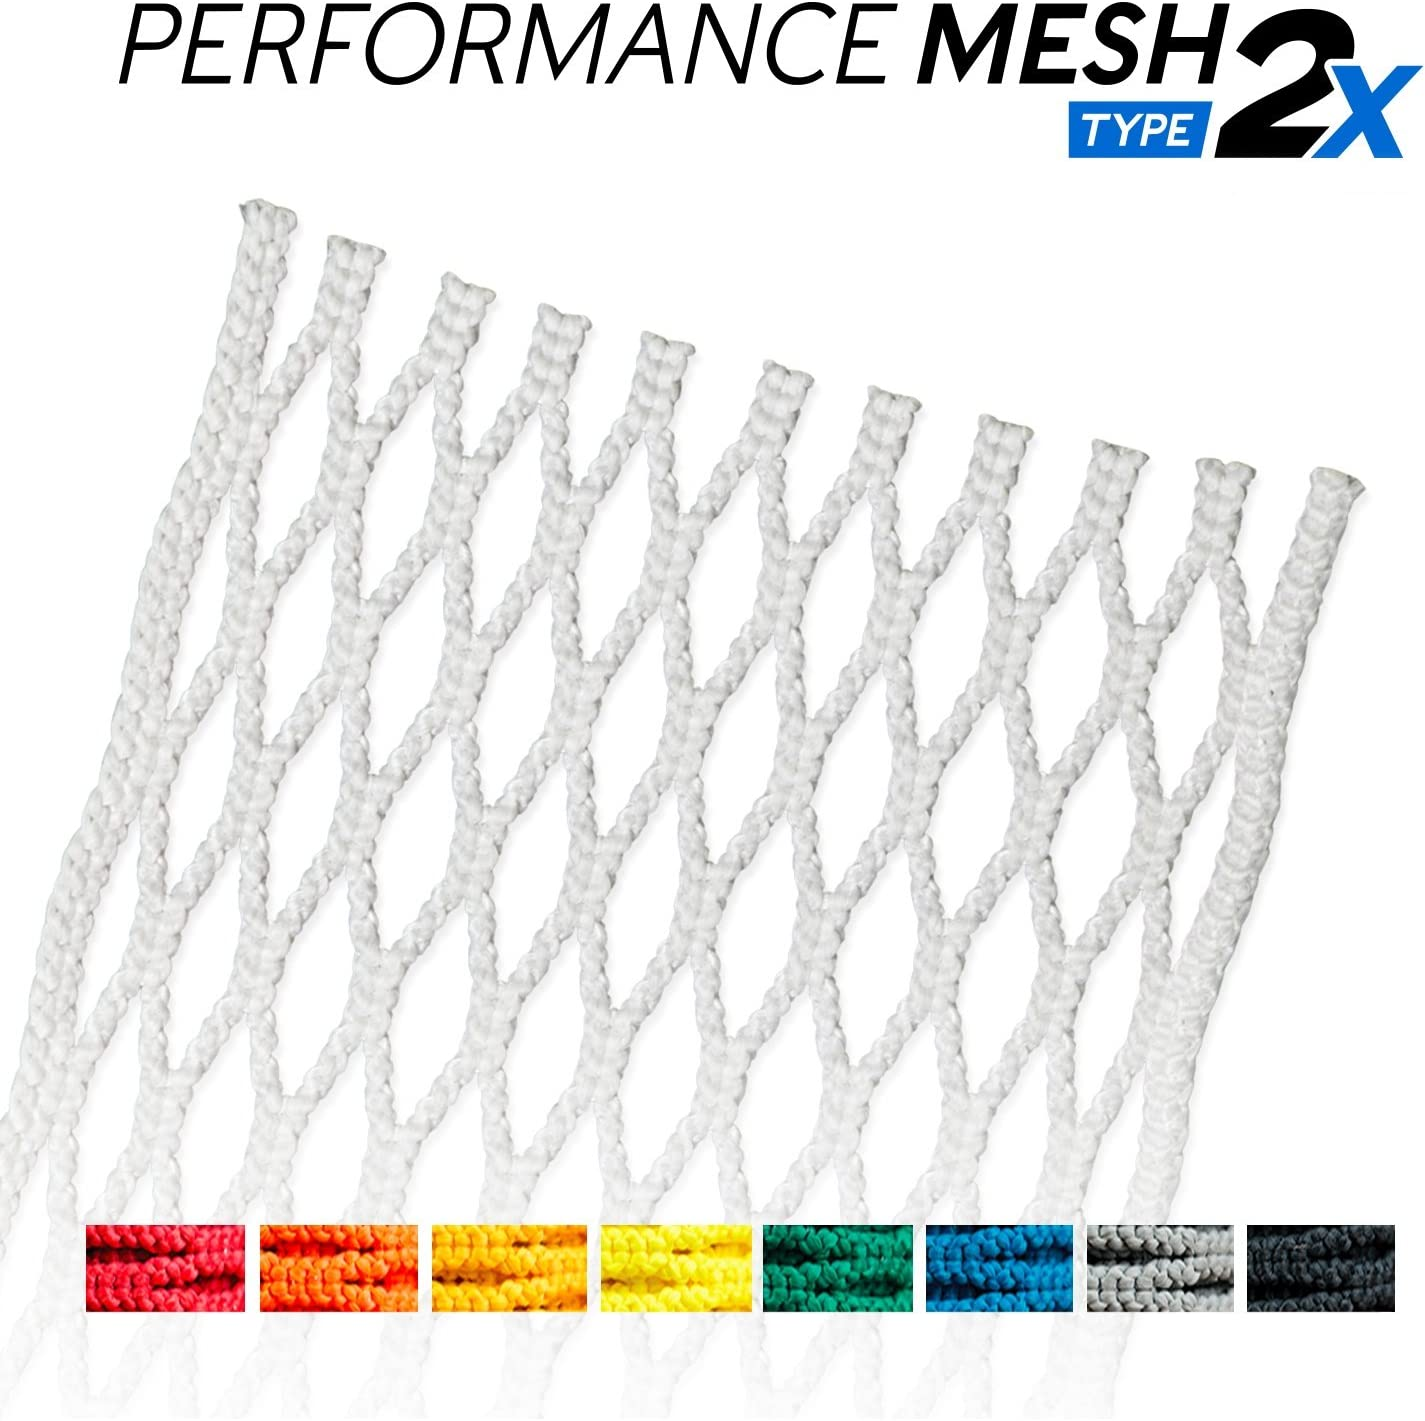 Assorted Colors StringKing Type 2s Semi-Soft Lacrosse Mesh Kit with Mesh and Strings